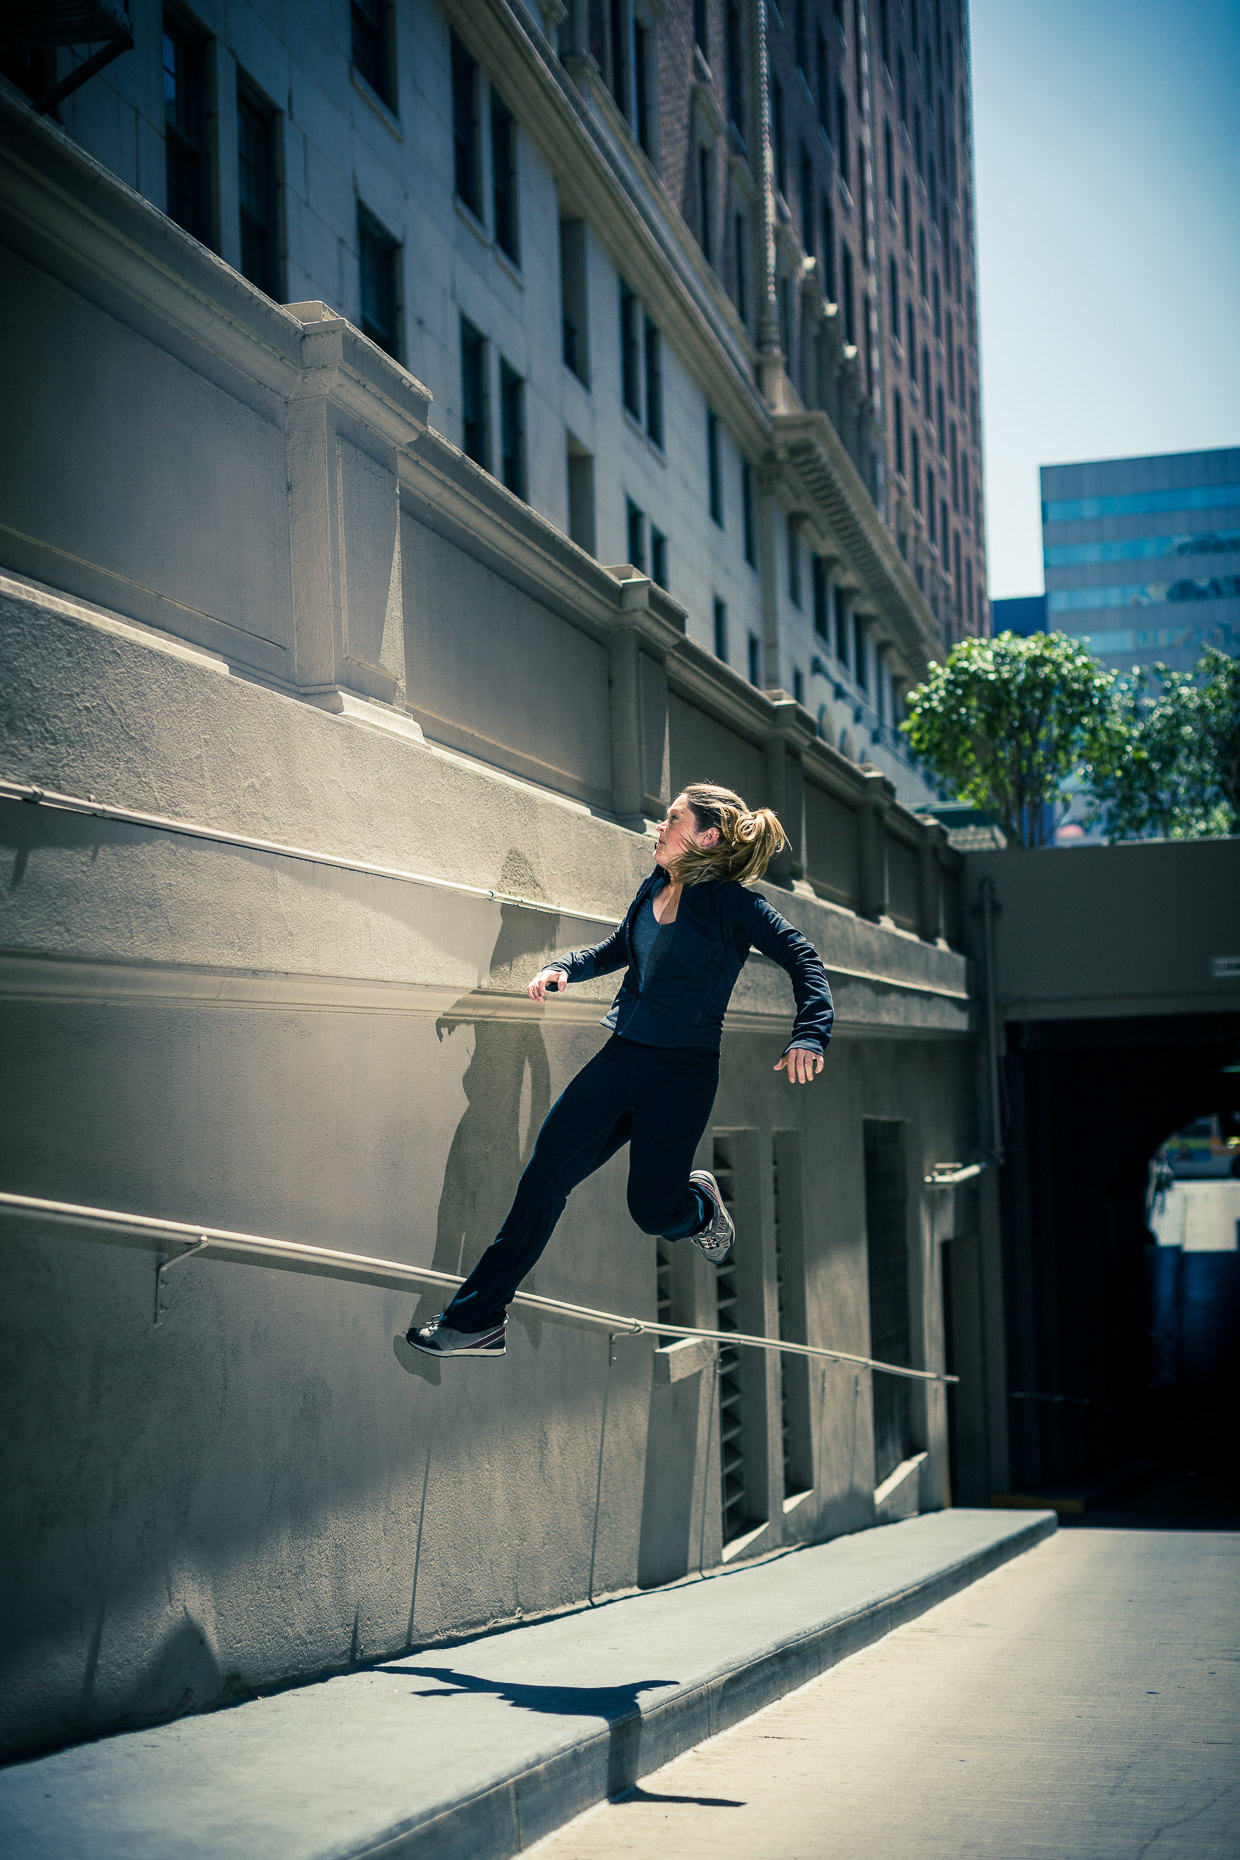 Luci Romberg freerunner parkour athlete floating off a concrete wall in downtown LA by andy batt